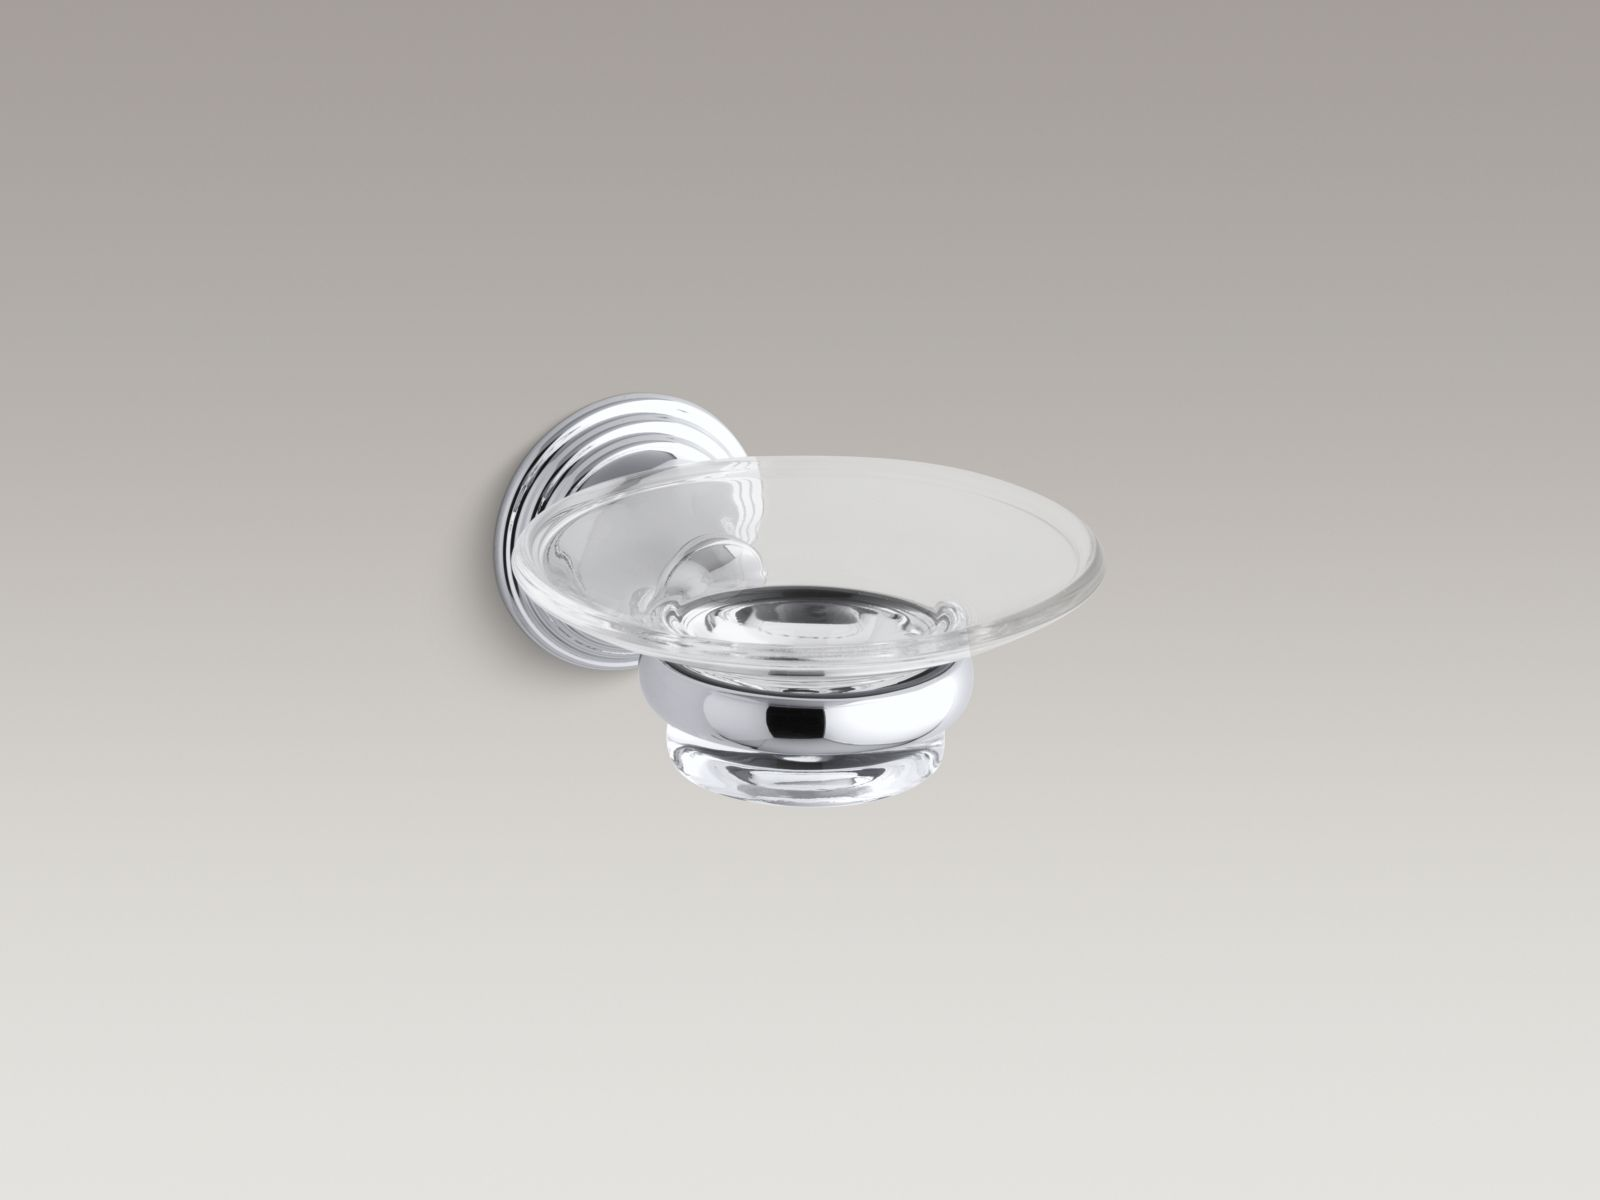 Kohler K-10560-CP Devonshire Wall-mounted Soap Dish Polished Chrome